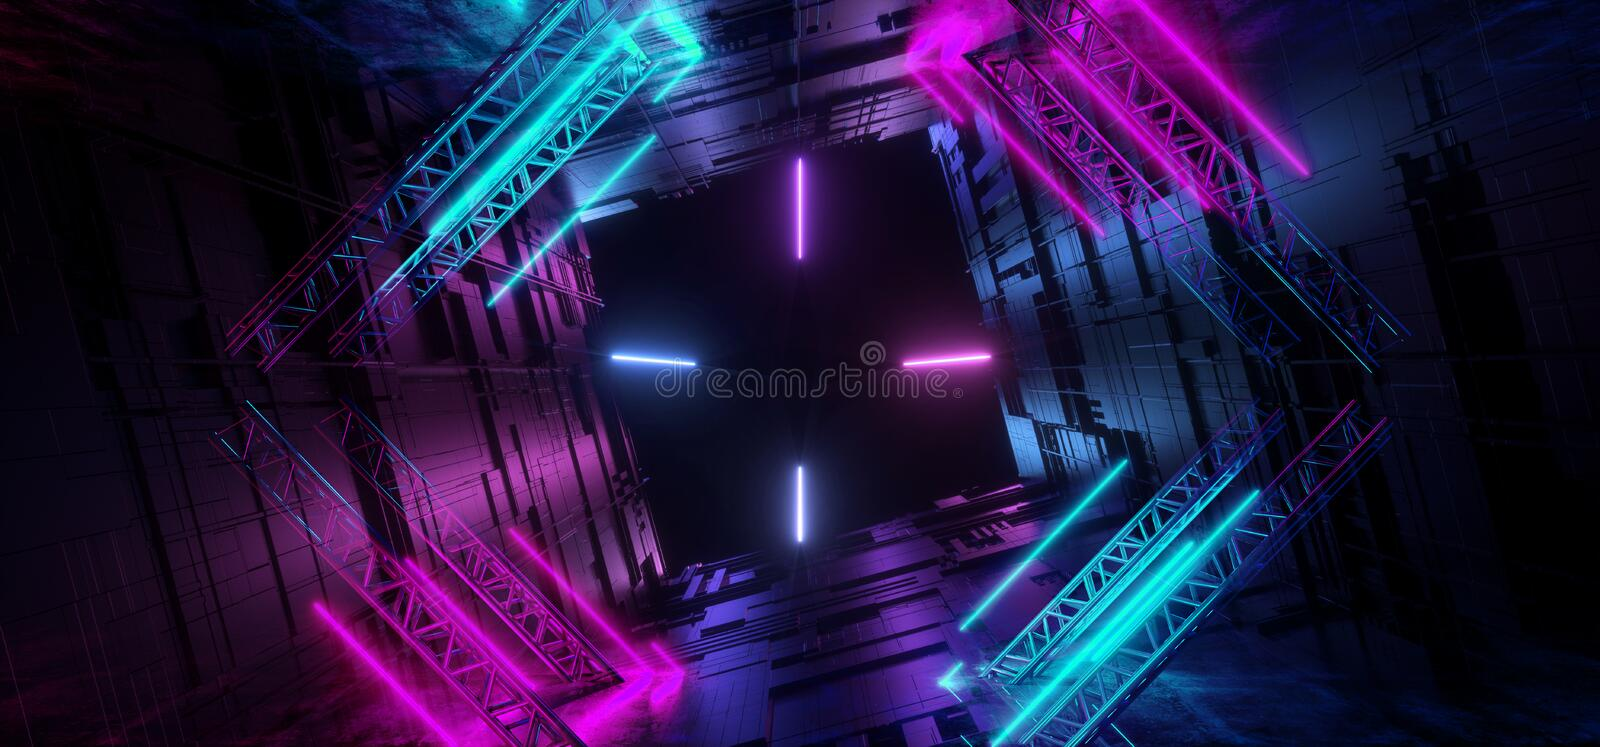 Laser Neon Glowing Lines Purple Blue Futuristic Sci Fi Tunnel Motherboard Chip Texture Reflective Background Underground Alien stock illustration